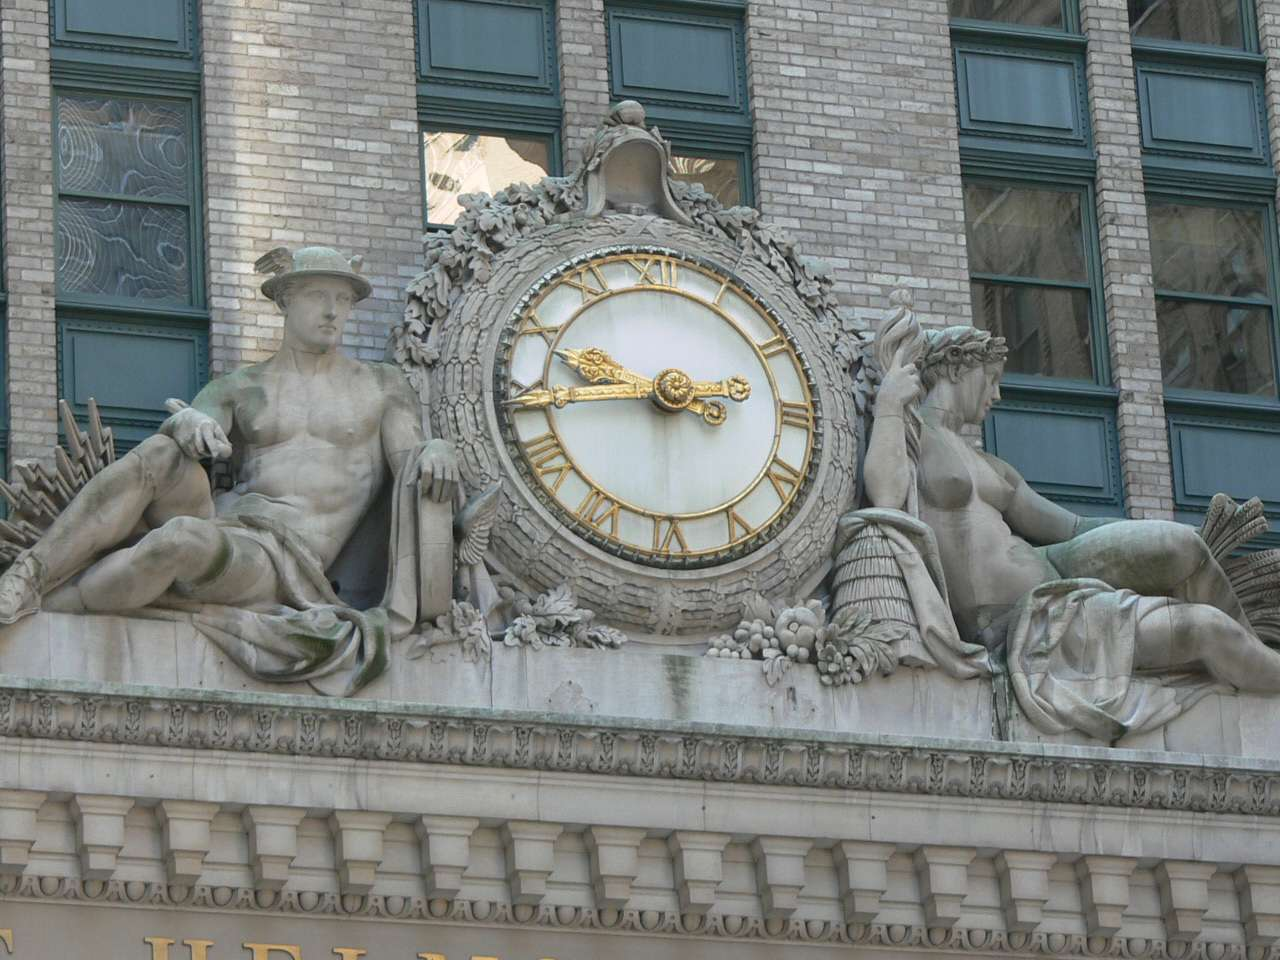 Beaux Arts clock on the Helmsley Building by Grand Central Terminal in New York City